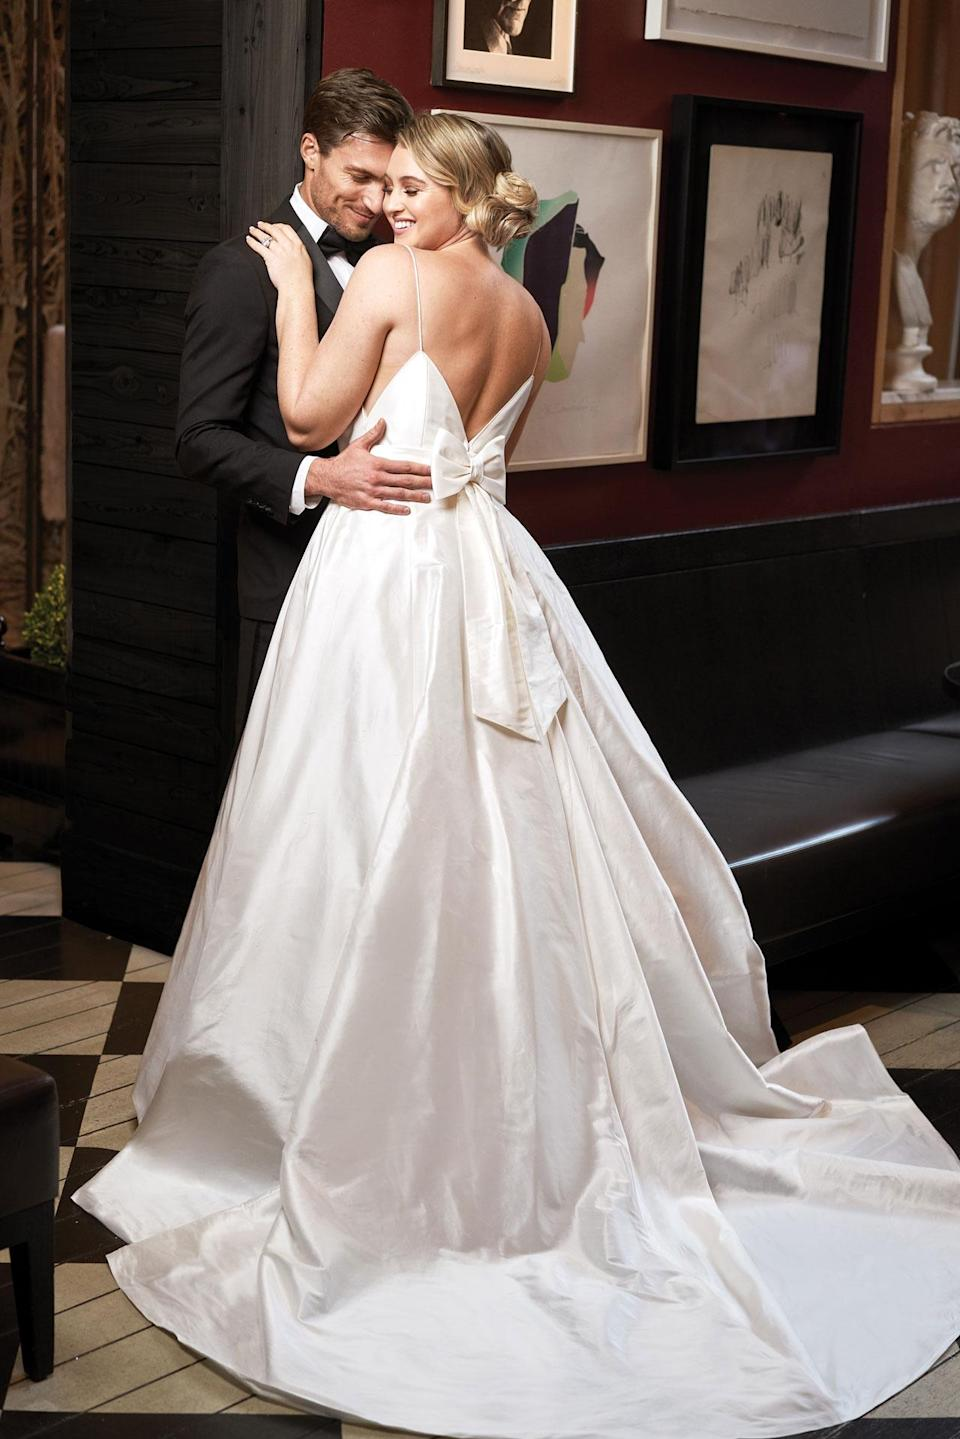 <p>Lawrence wears a voluminous white full-skirt gown with back bow detail by Justin Alexander. (Photo: courtesy of Justin Alexander) </p>